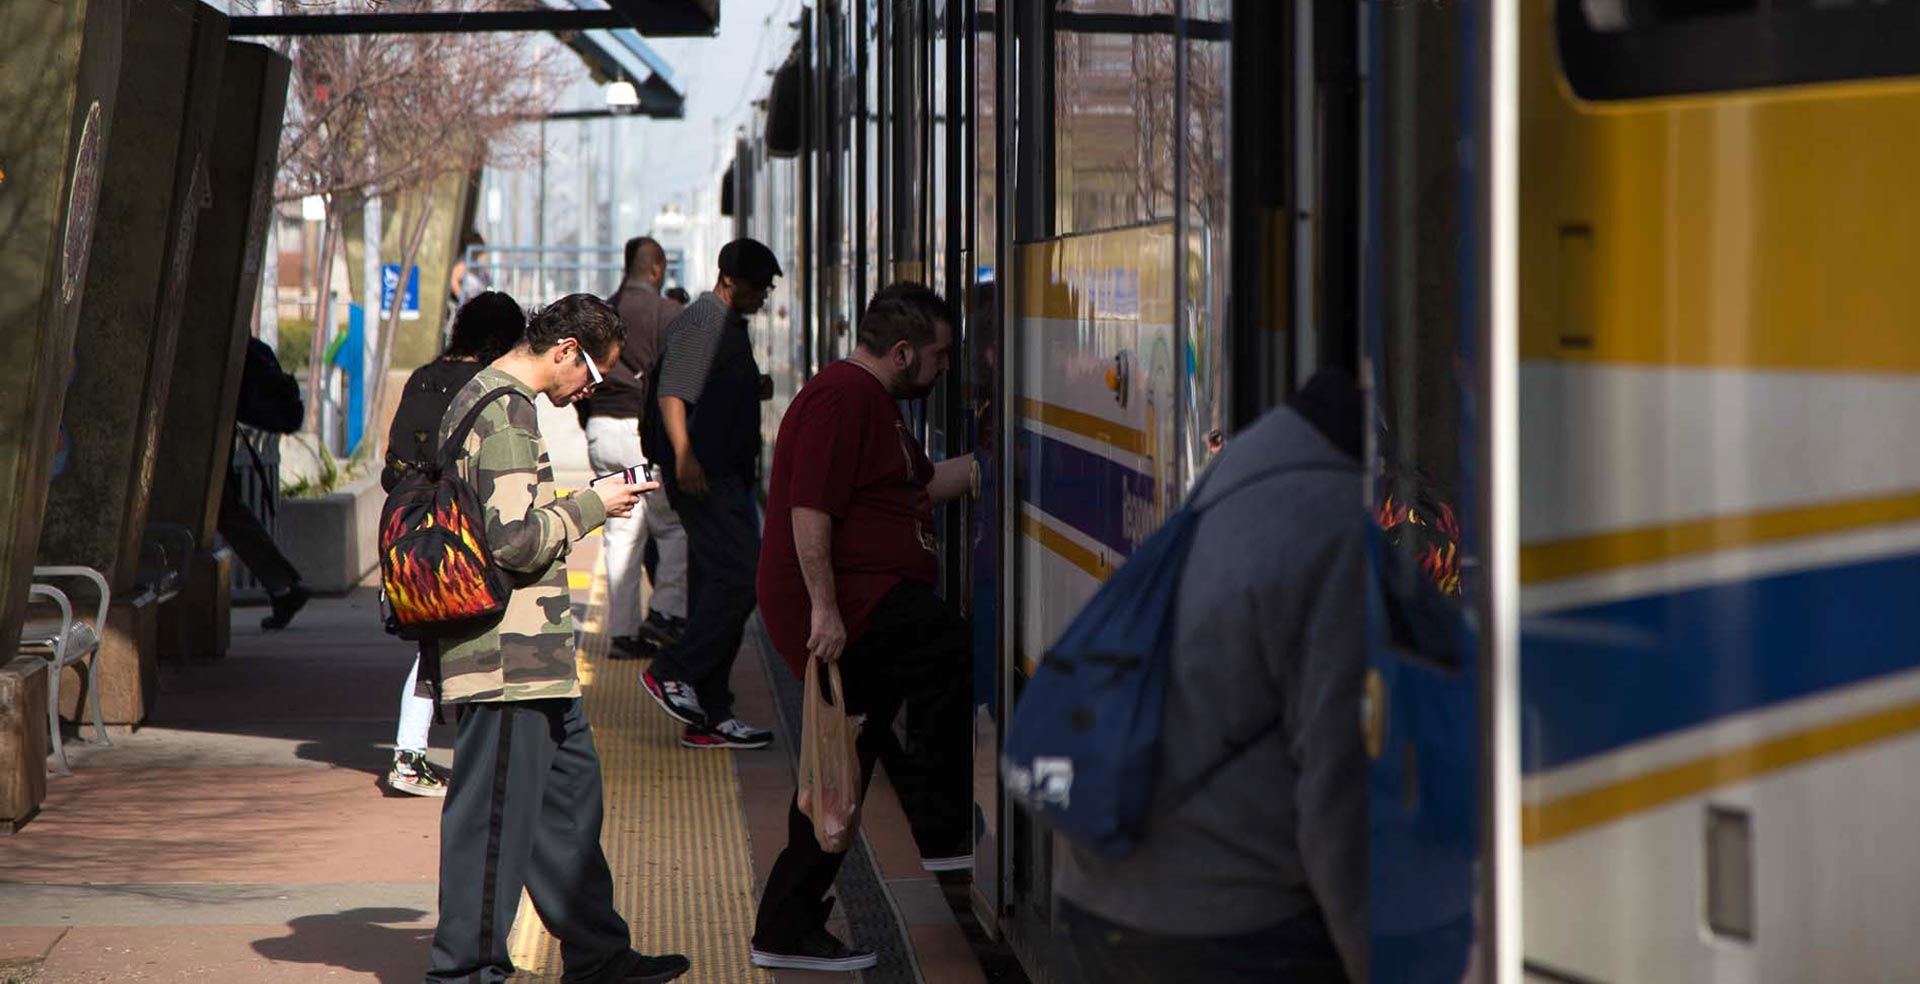 The Meadowview light-rail station in South Sacramento connects the working-class neighborhood to downtown Sacramento. Andrew Nixon/Capital Public Radio